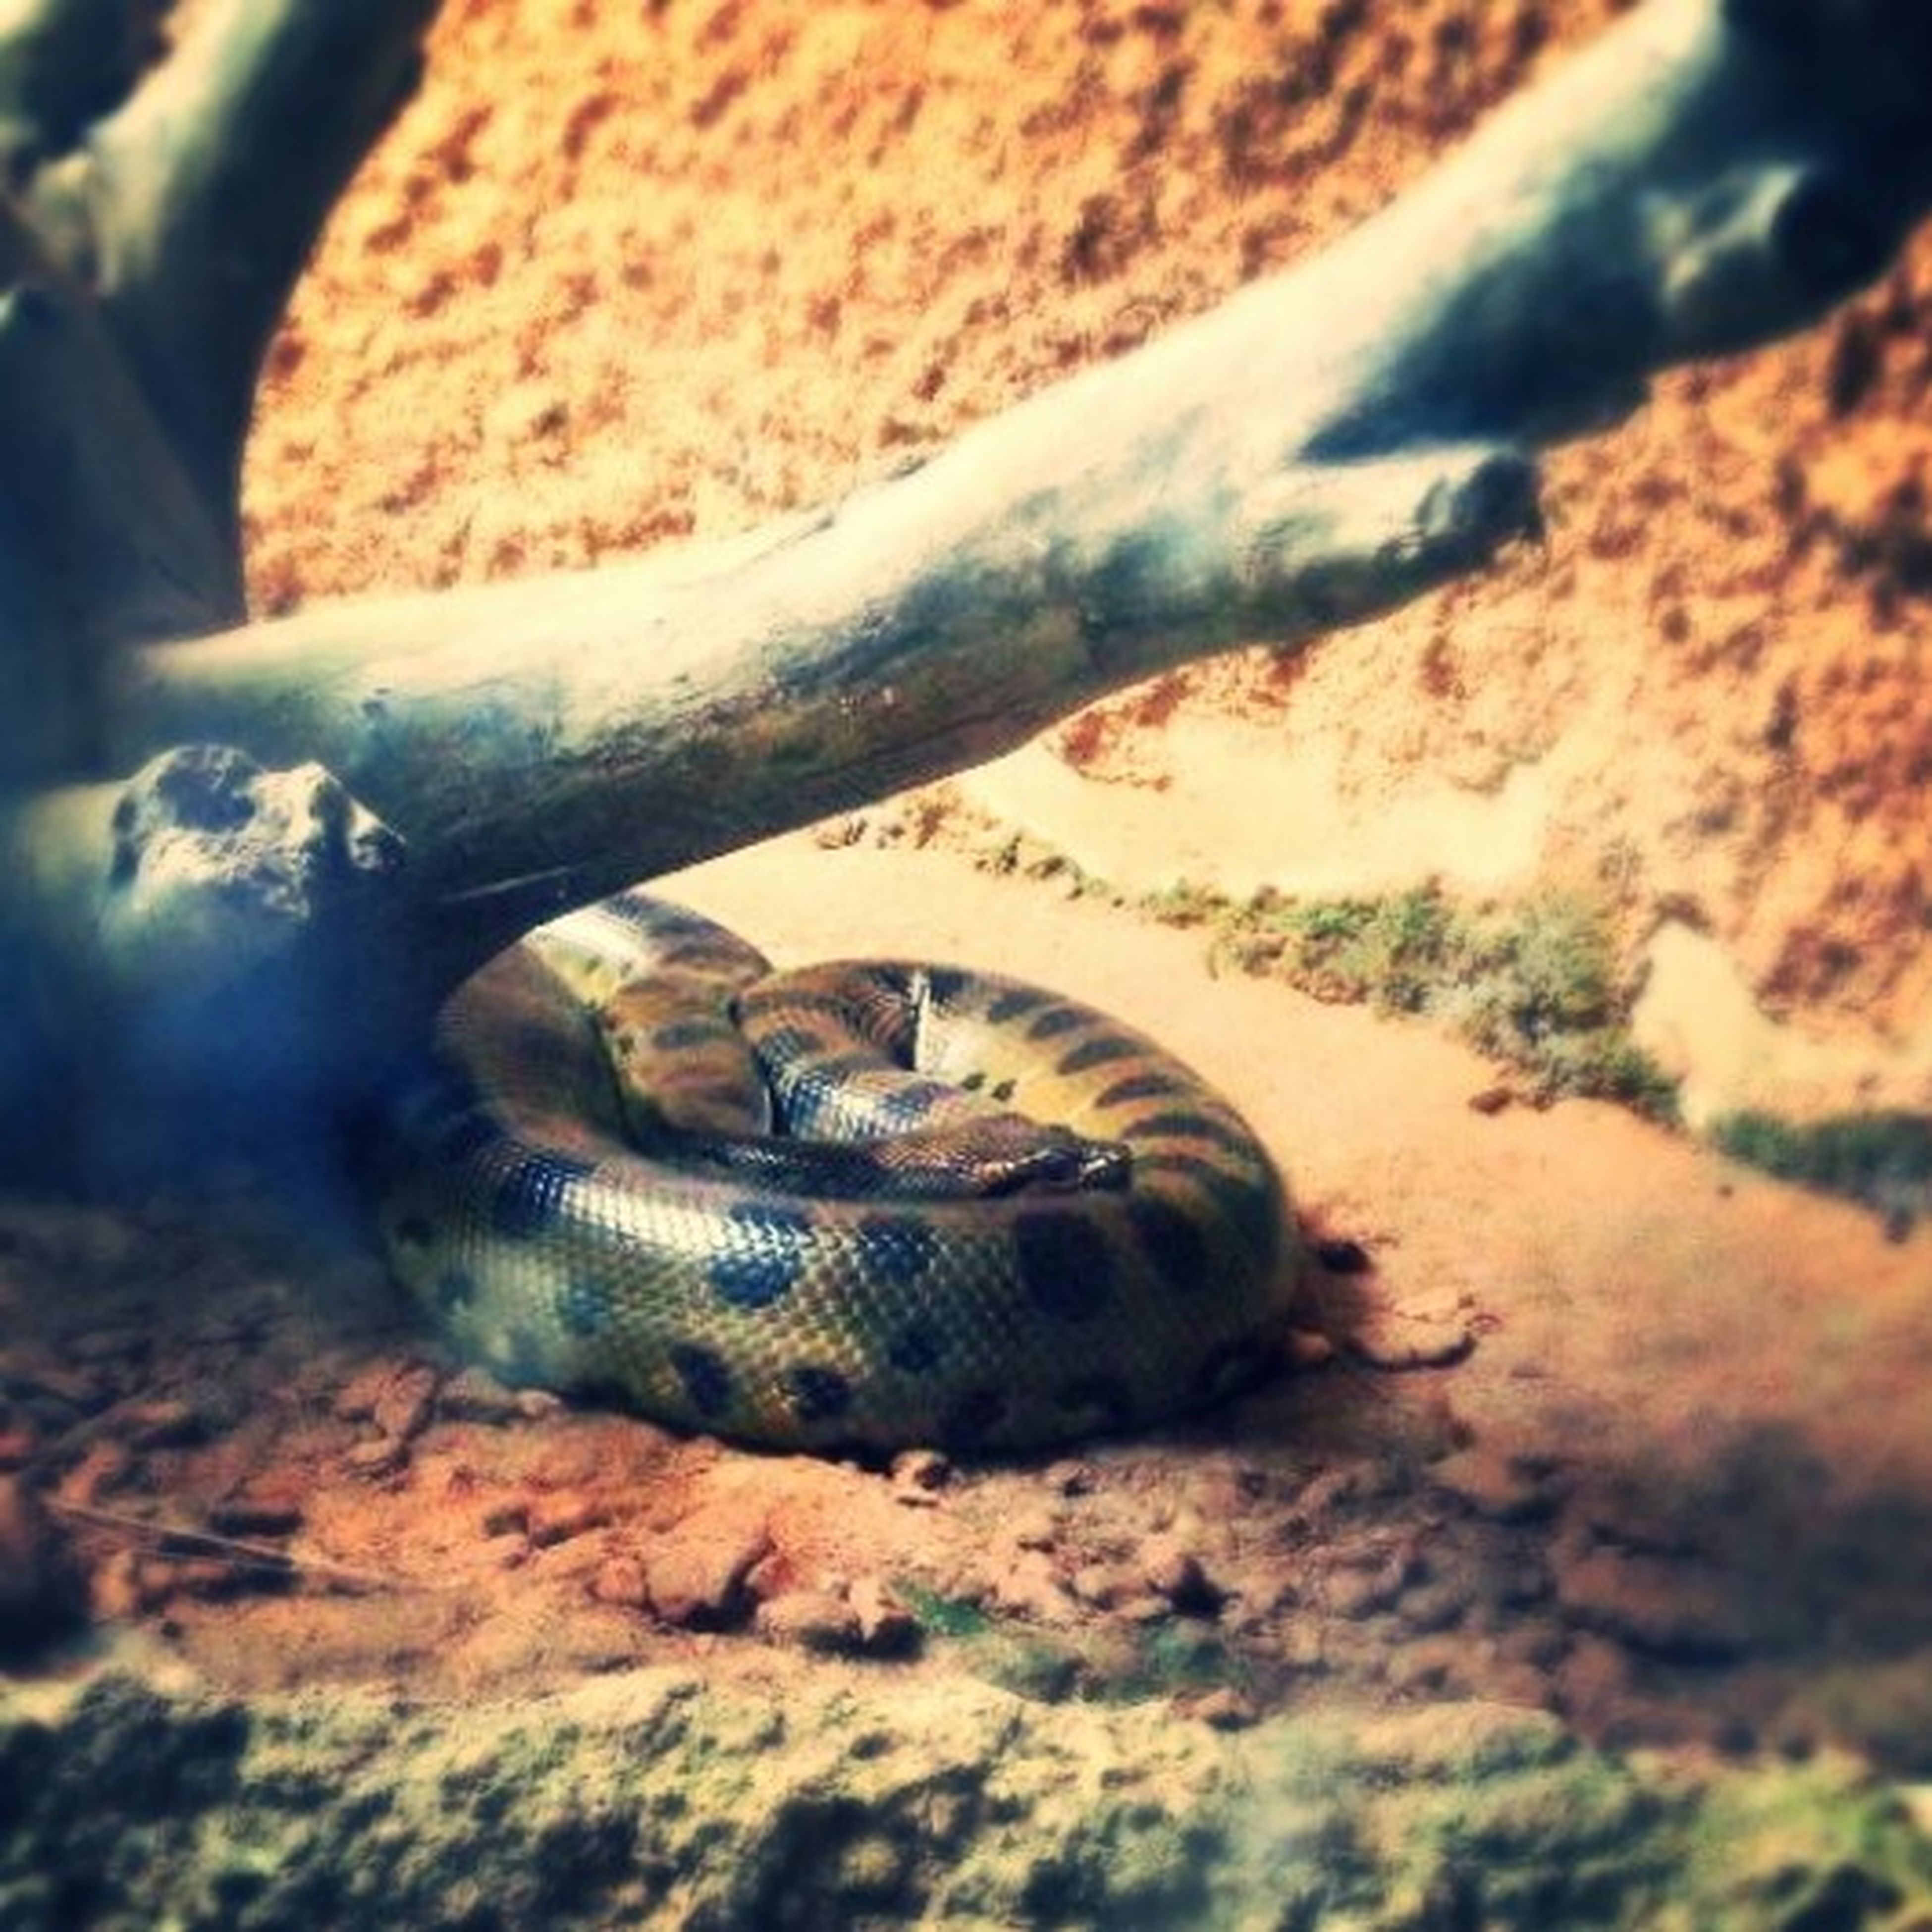 animal themes, animals in the wild, one animal, wildlife, close-up, animal shell, reptile, nature, snail, selective focus, focus on foreground, outdoors, no people, day, snake, turtle, high angle view, rock - object, shell, zoology